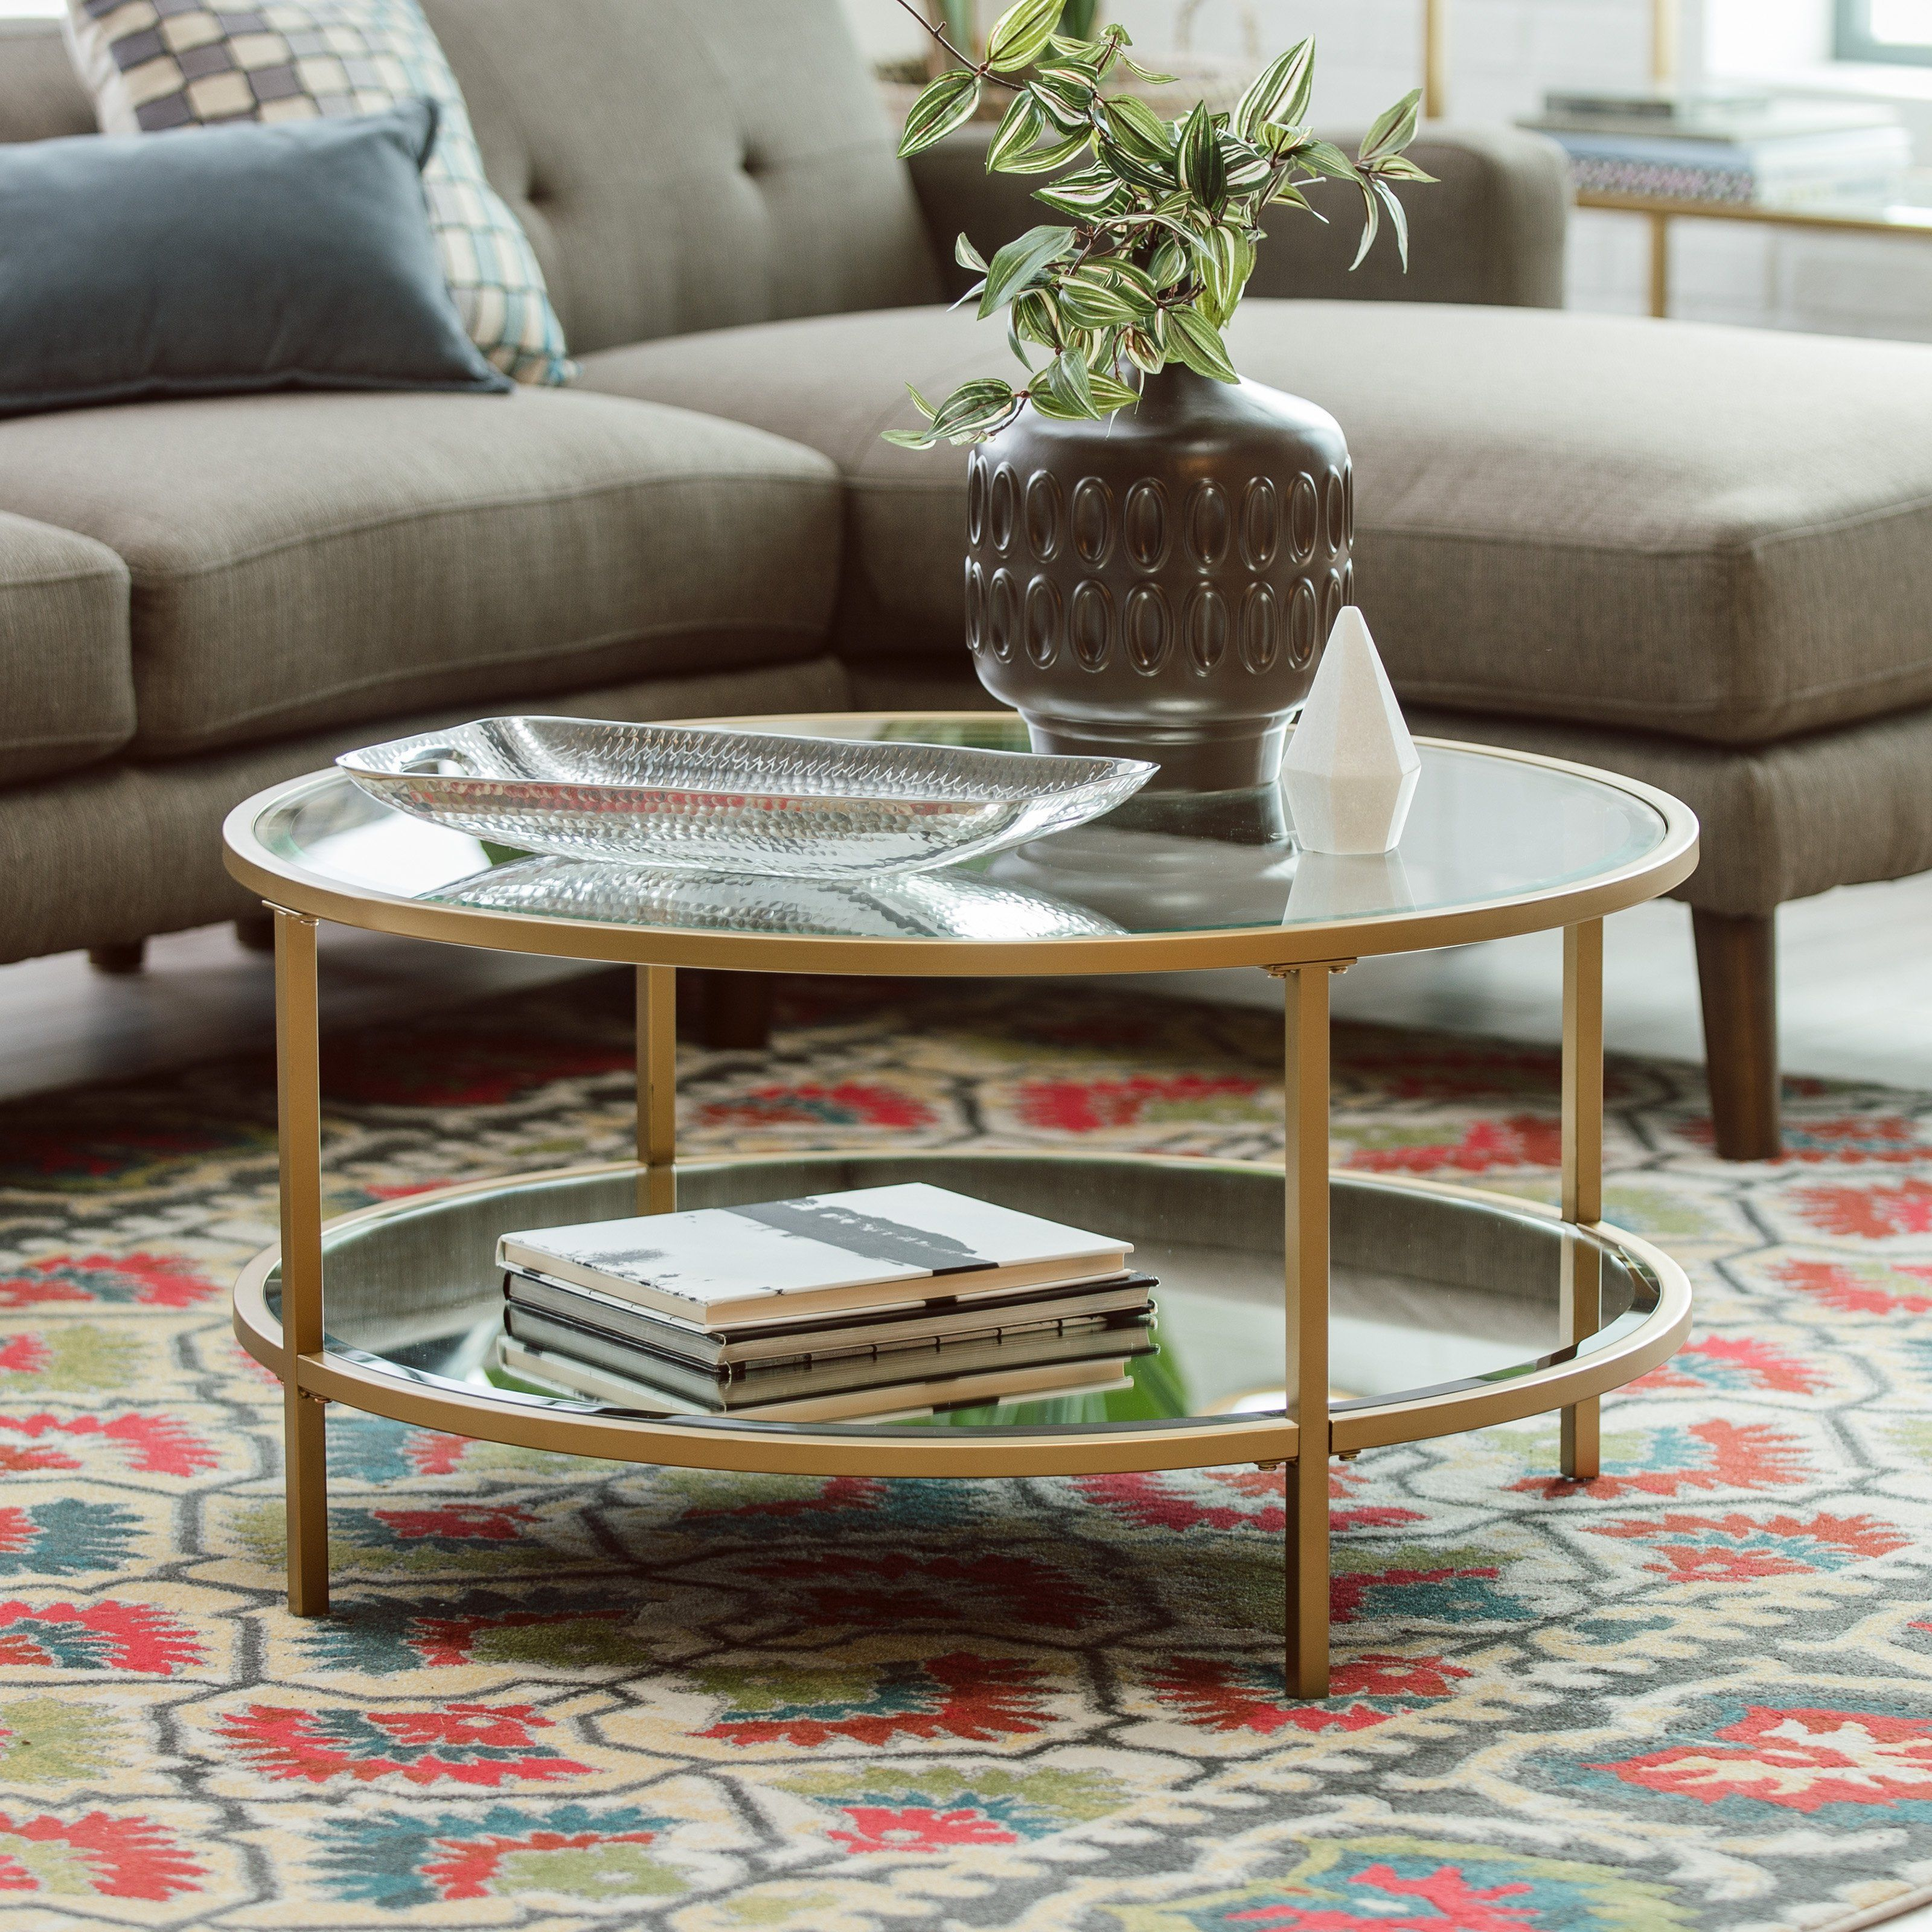 Pin by Houzz Magazine on Coffee Table Ideas   Living room ...